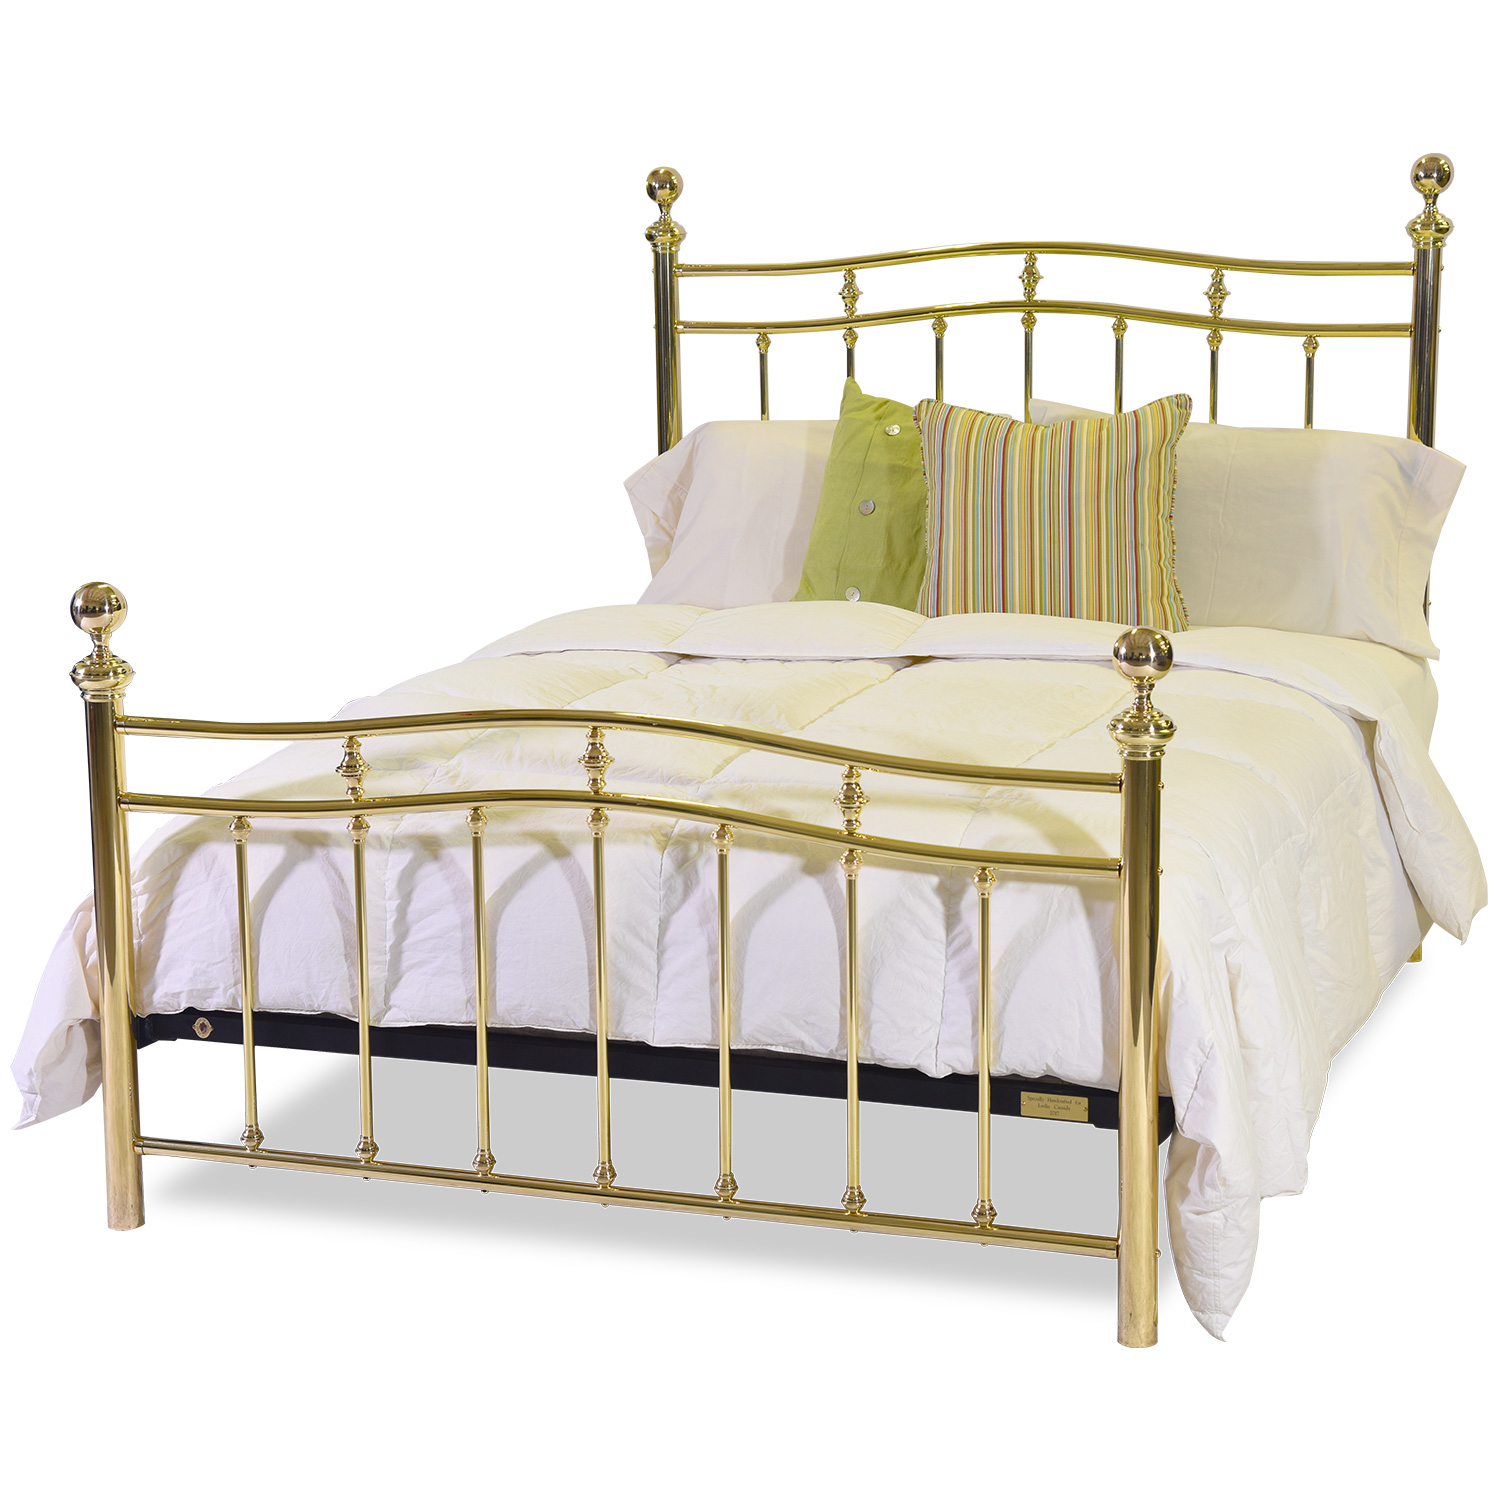 126 Portico Brass Bed